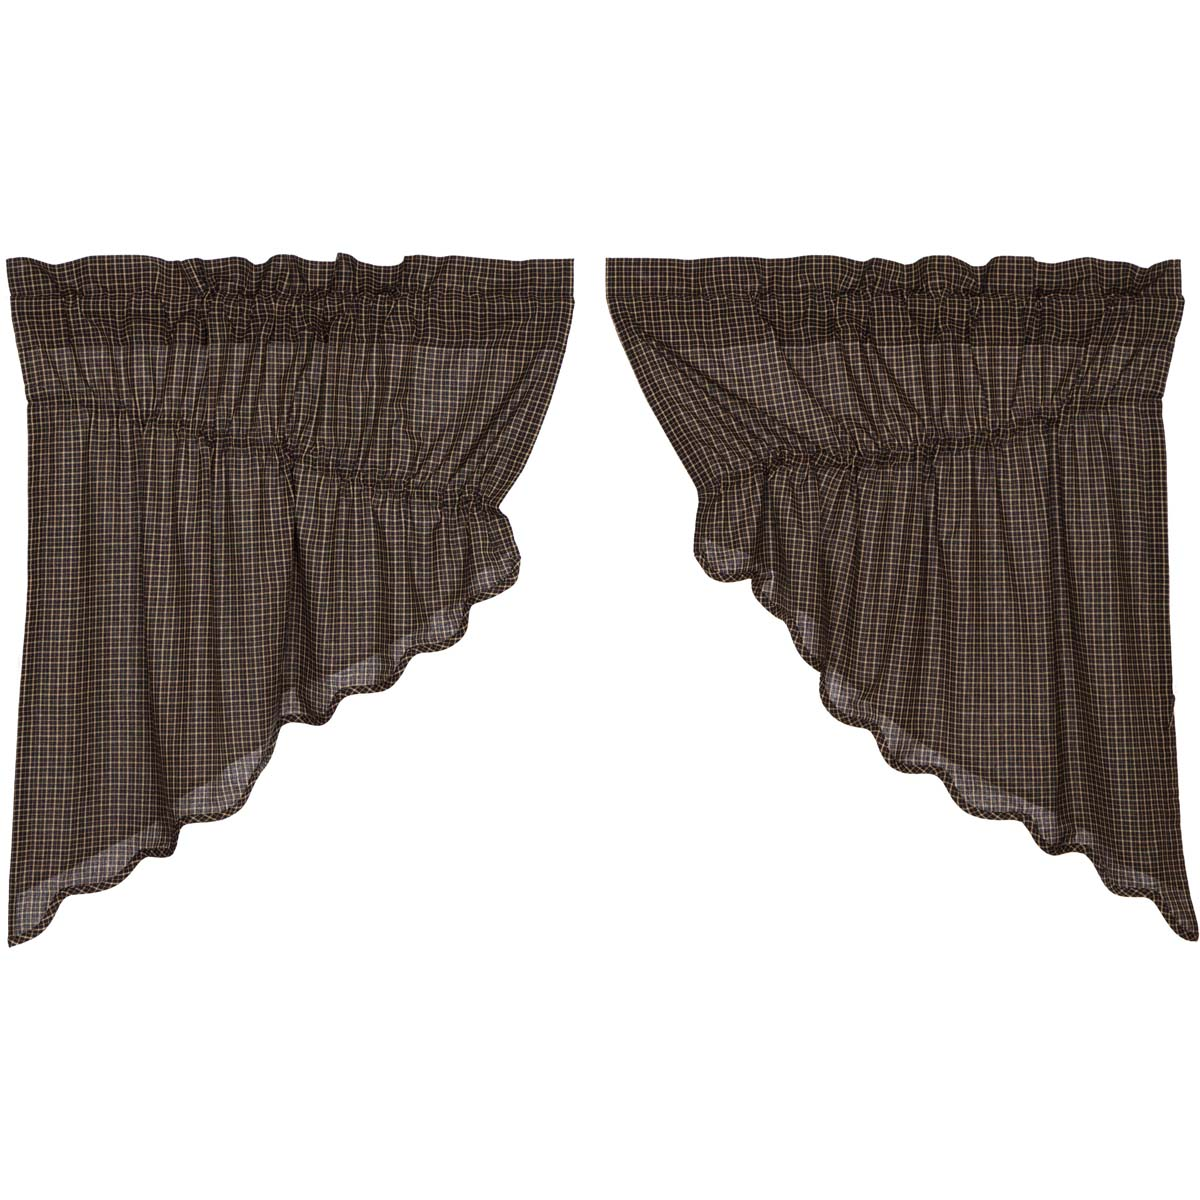 Kettle Grove Plaid Prairie Swag Scalloped Set of 2 36x36x18